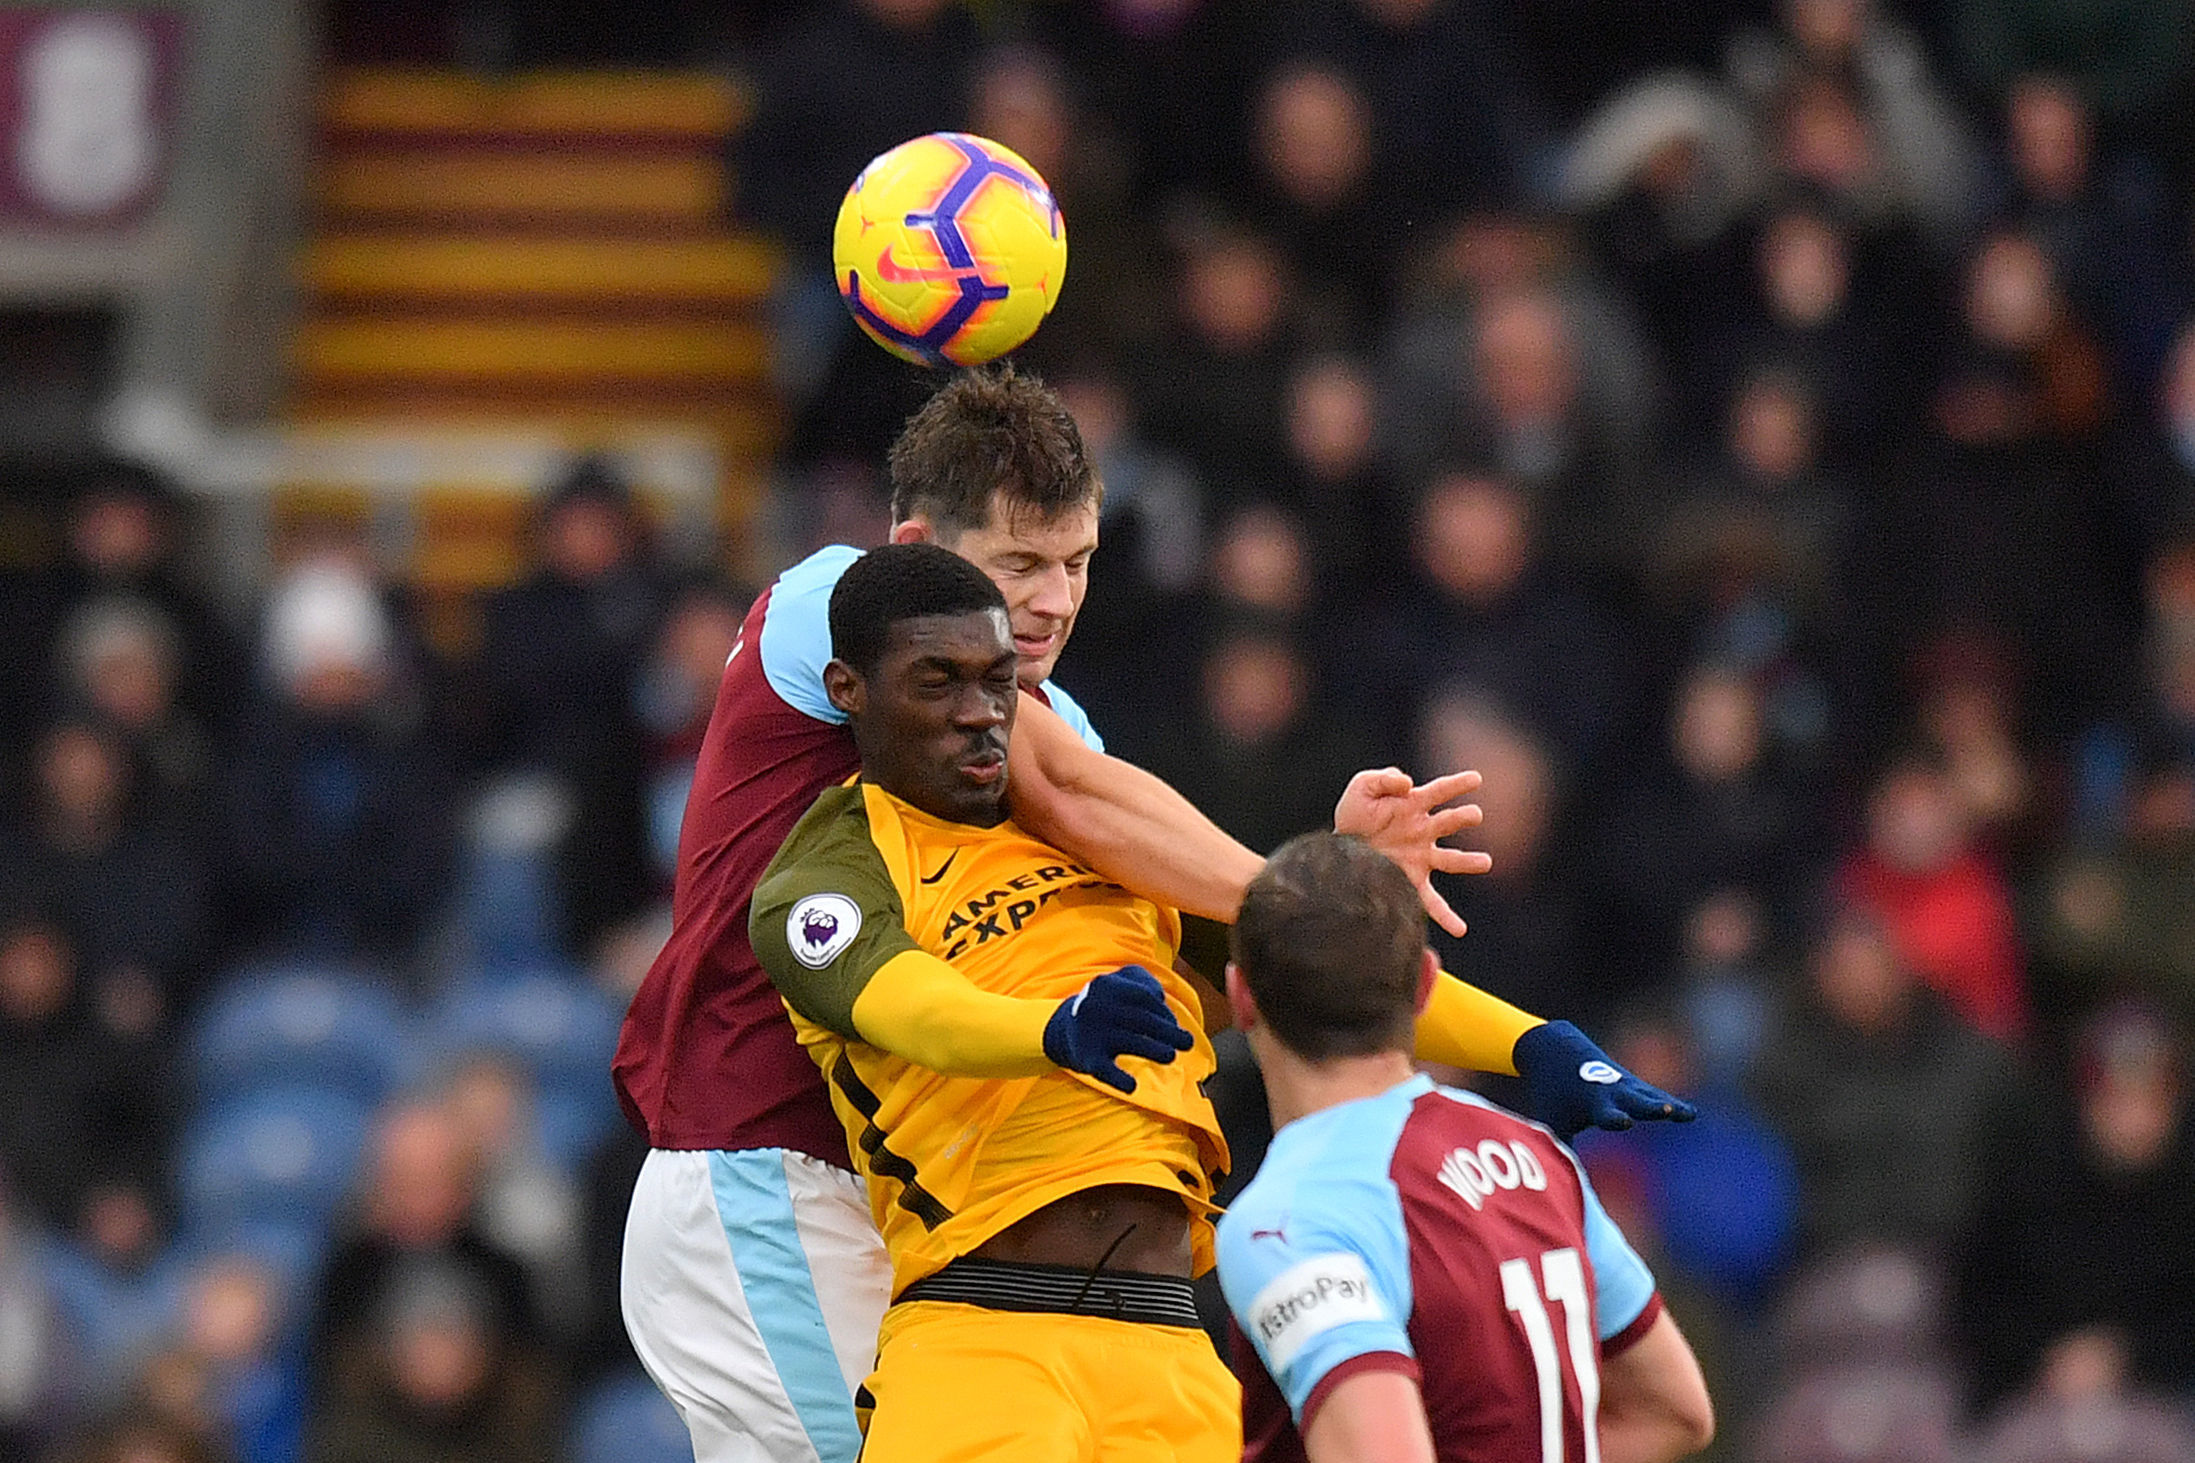 Mee paying no attention to accusations against Clarets